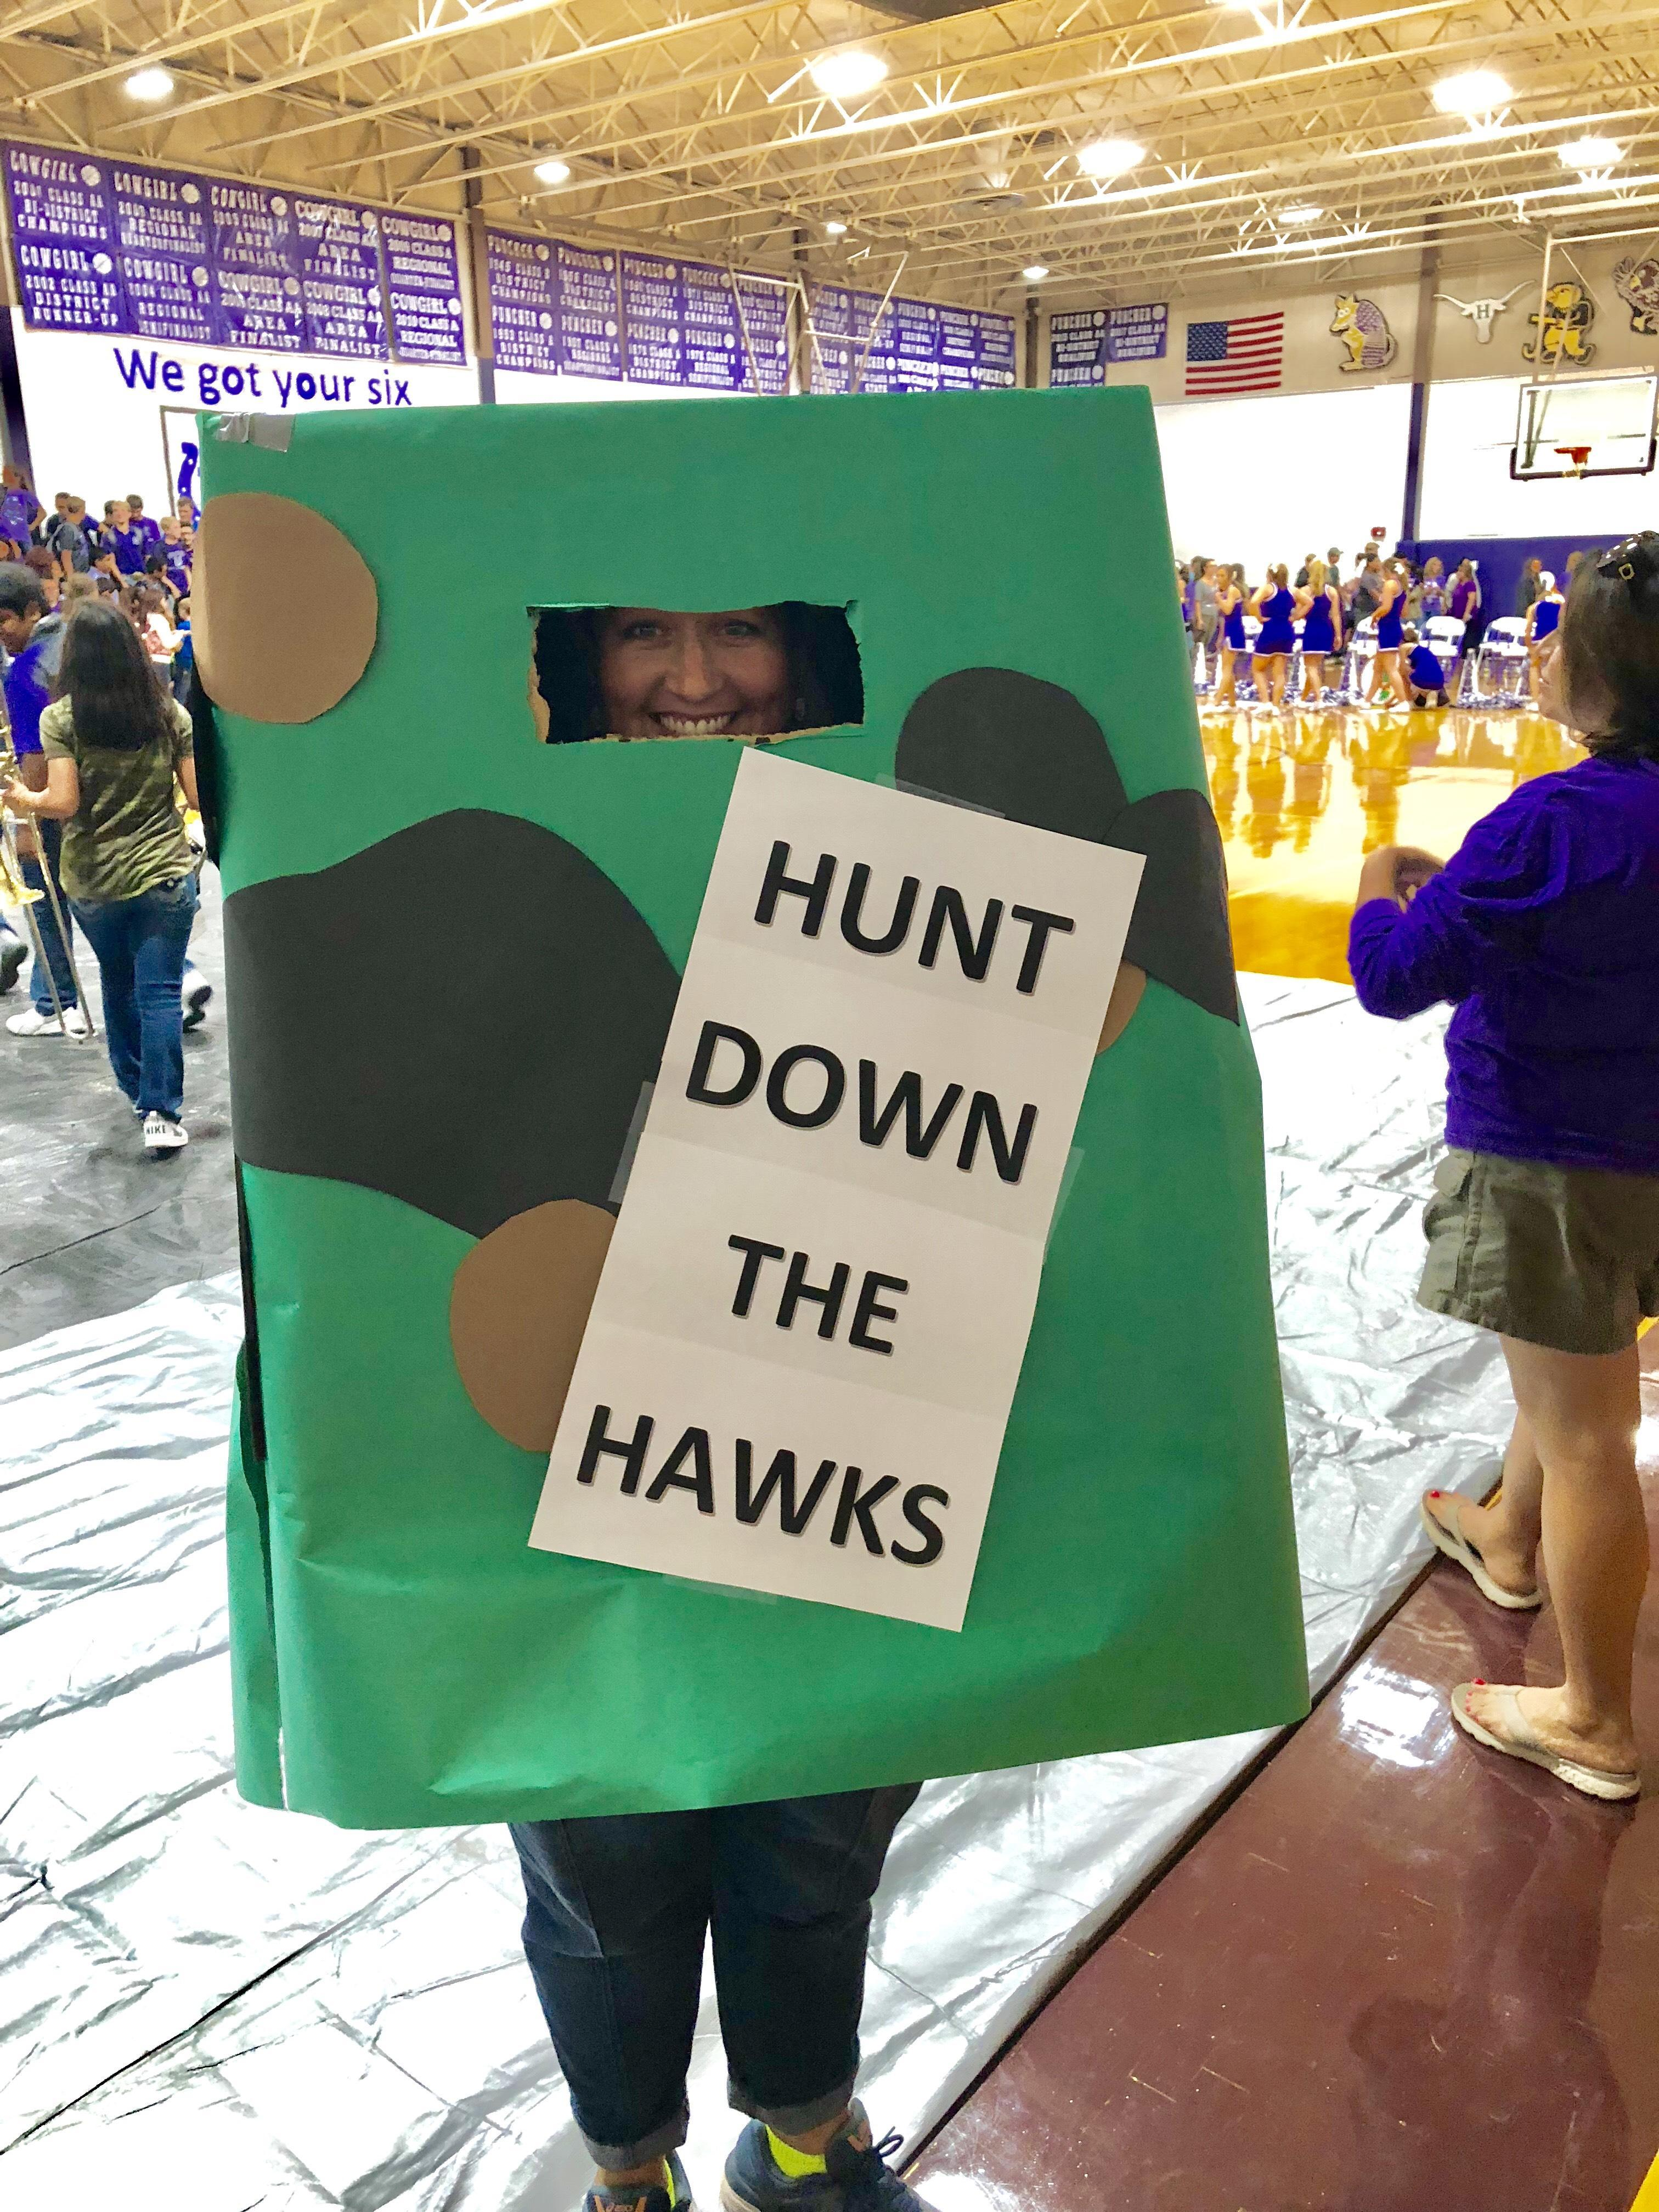 Mrs. Armstrong is ready to Hunt some Hawks!